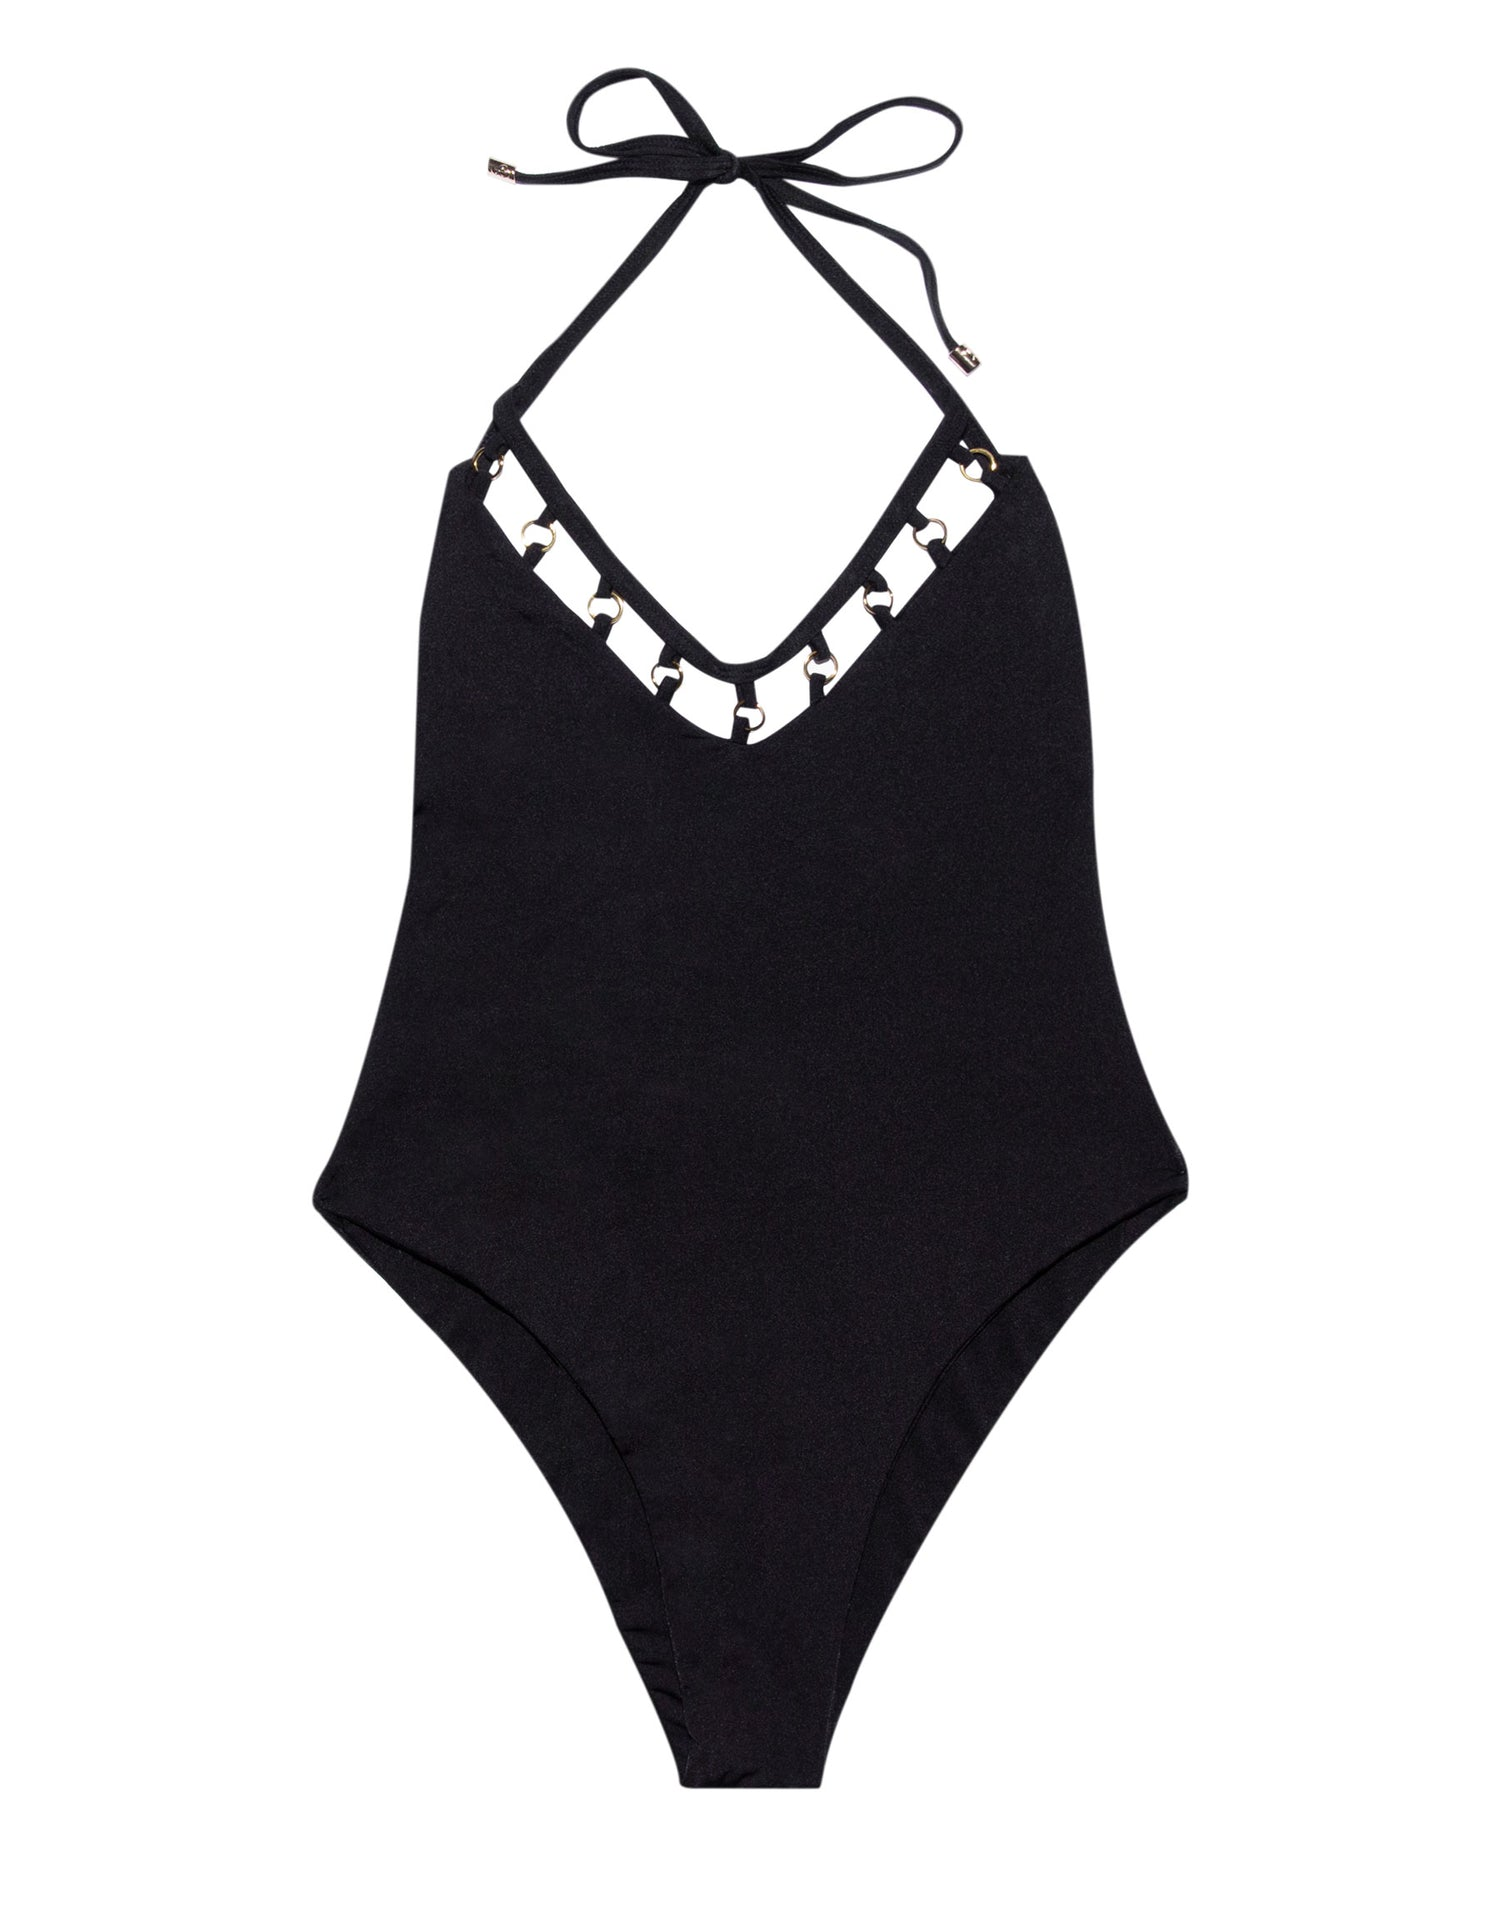 Ireland One Piece in Black Front View